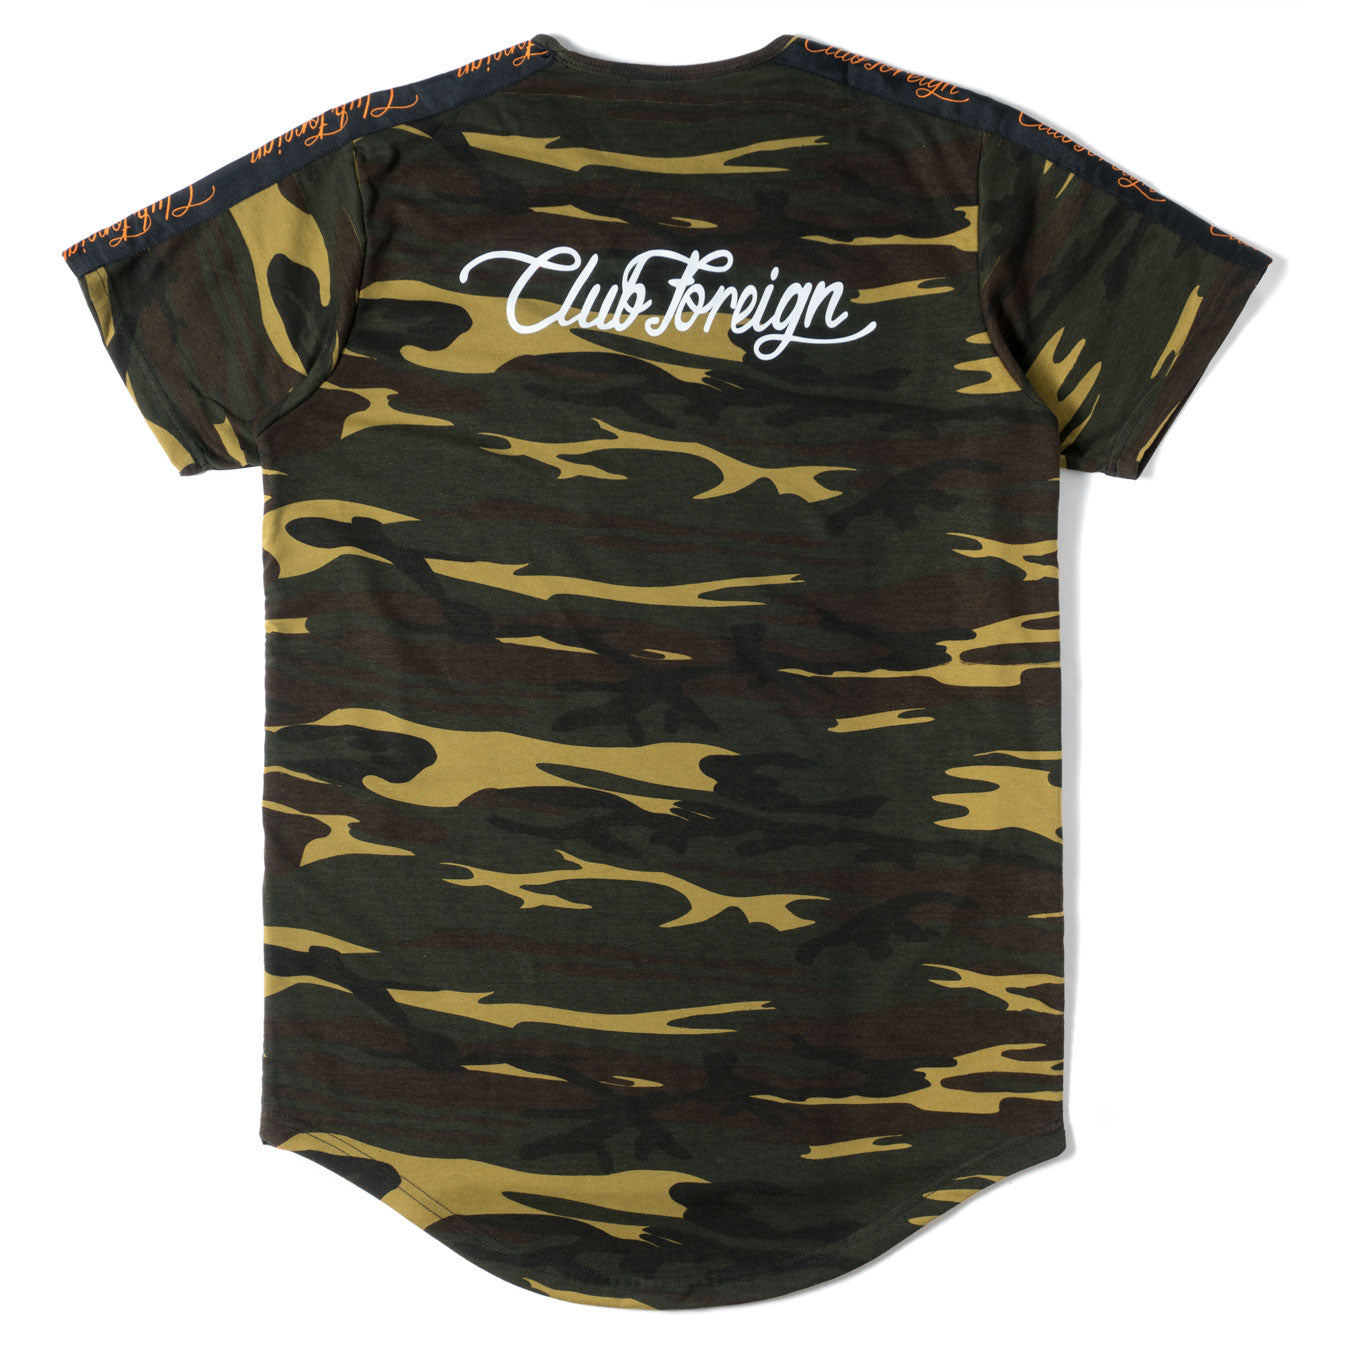 Club Foreign Performance Longline T-shirt Camo Green - Trends Society